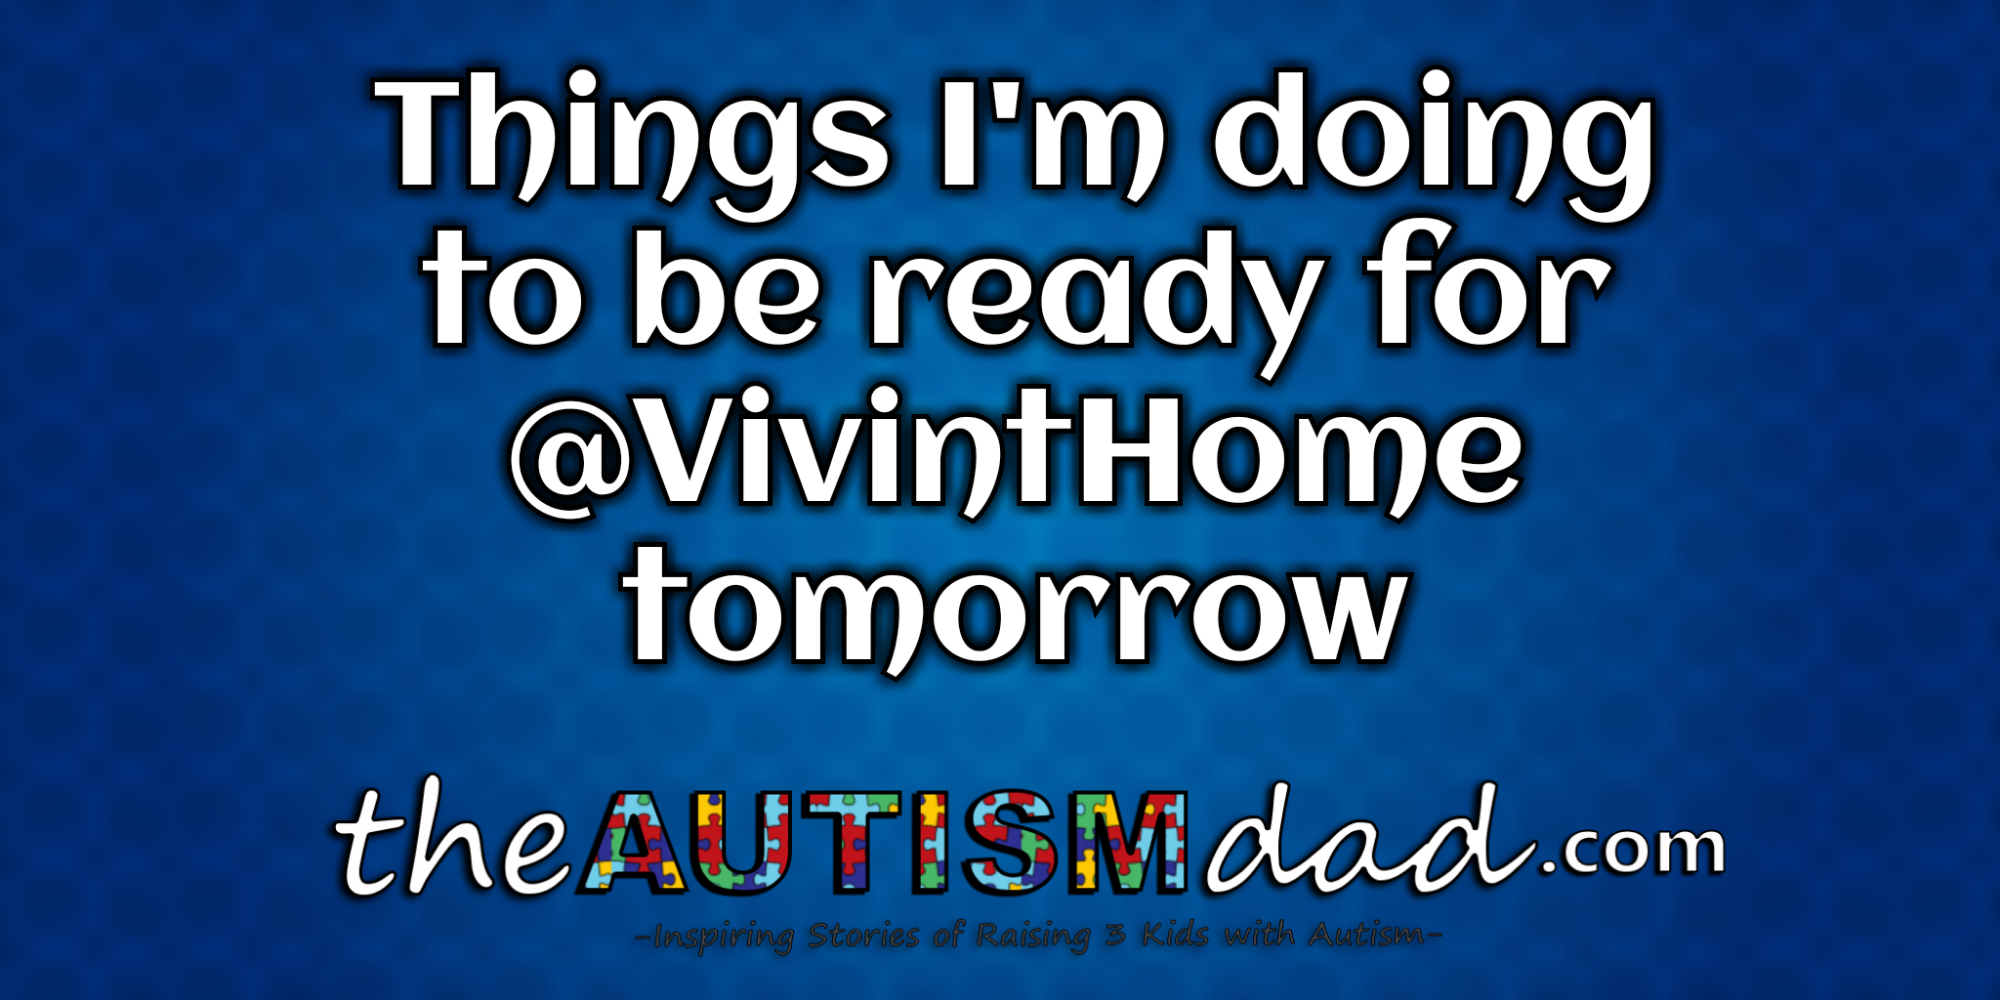 Things I'm doing to be ready for @VivintHome tomorrow